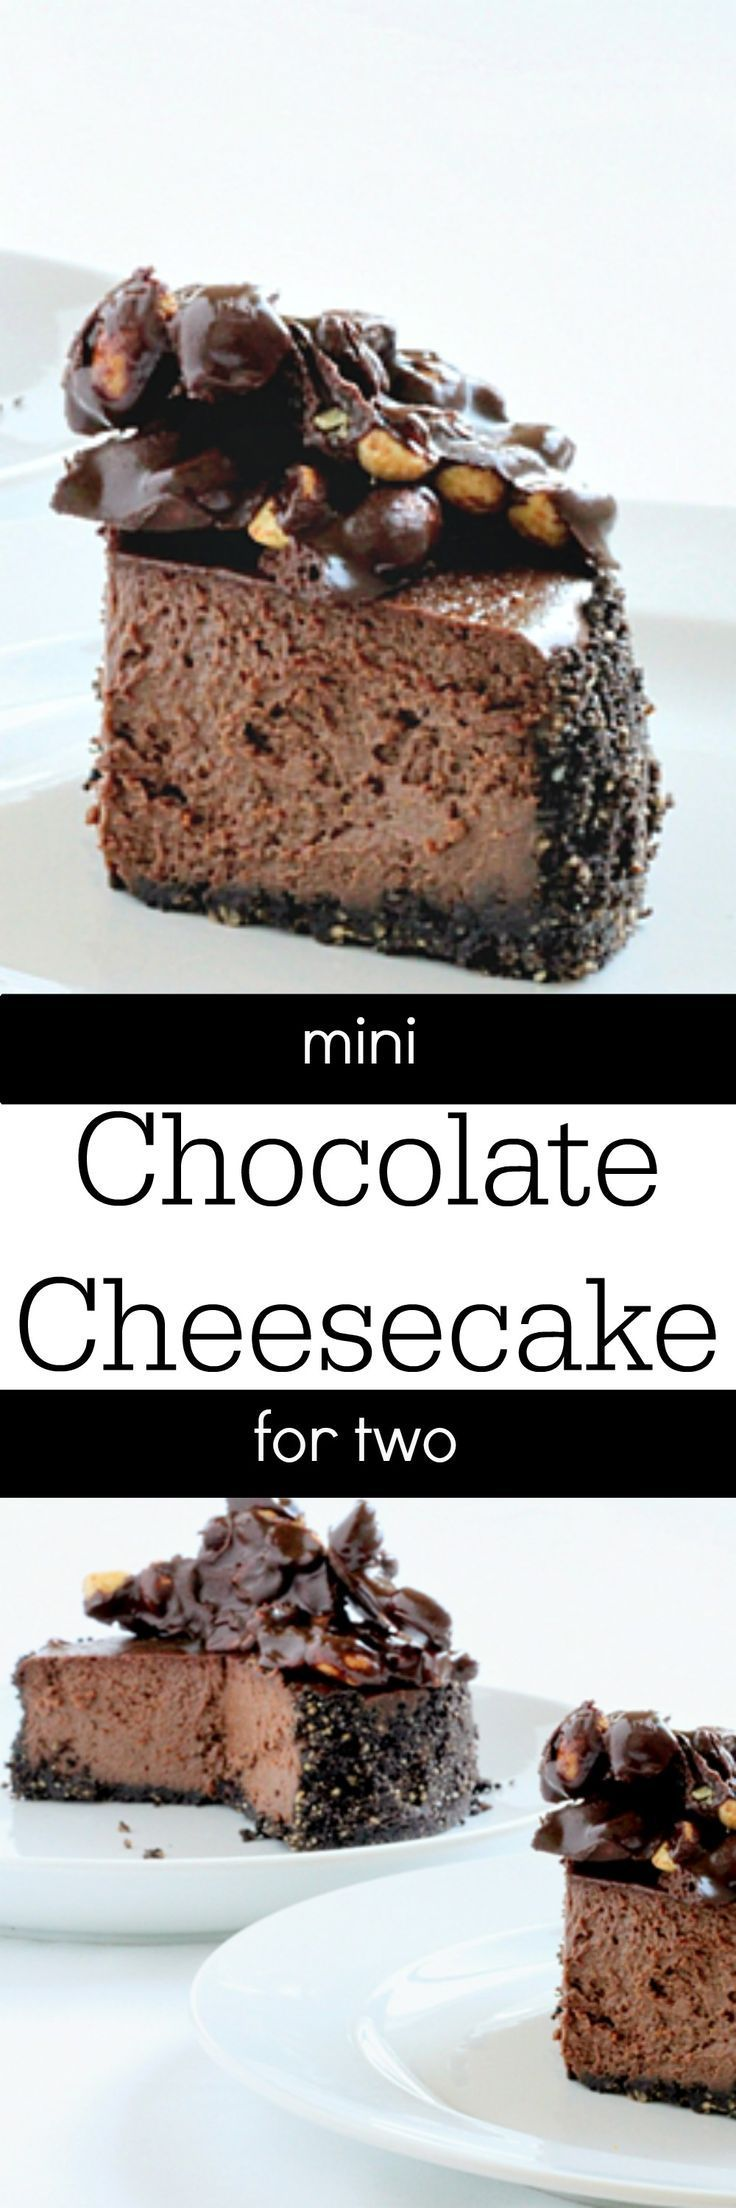 A small chocolate cheesecake for two. This dessert for two has chocolate covered peanuts on top of a rich, chocolate cheesecake with chocolate cookie crust! /dessertfortwo/